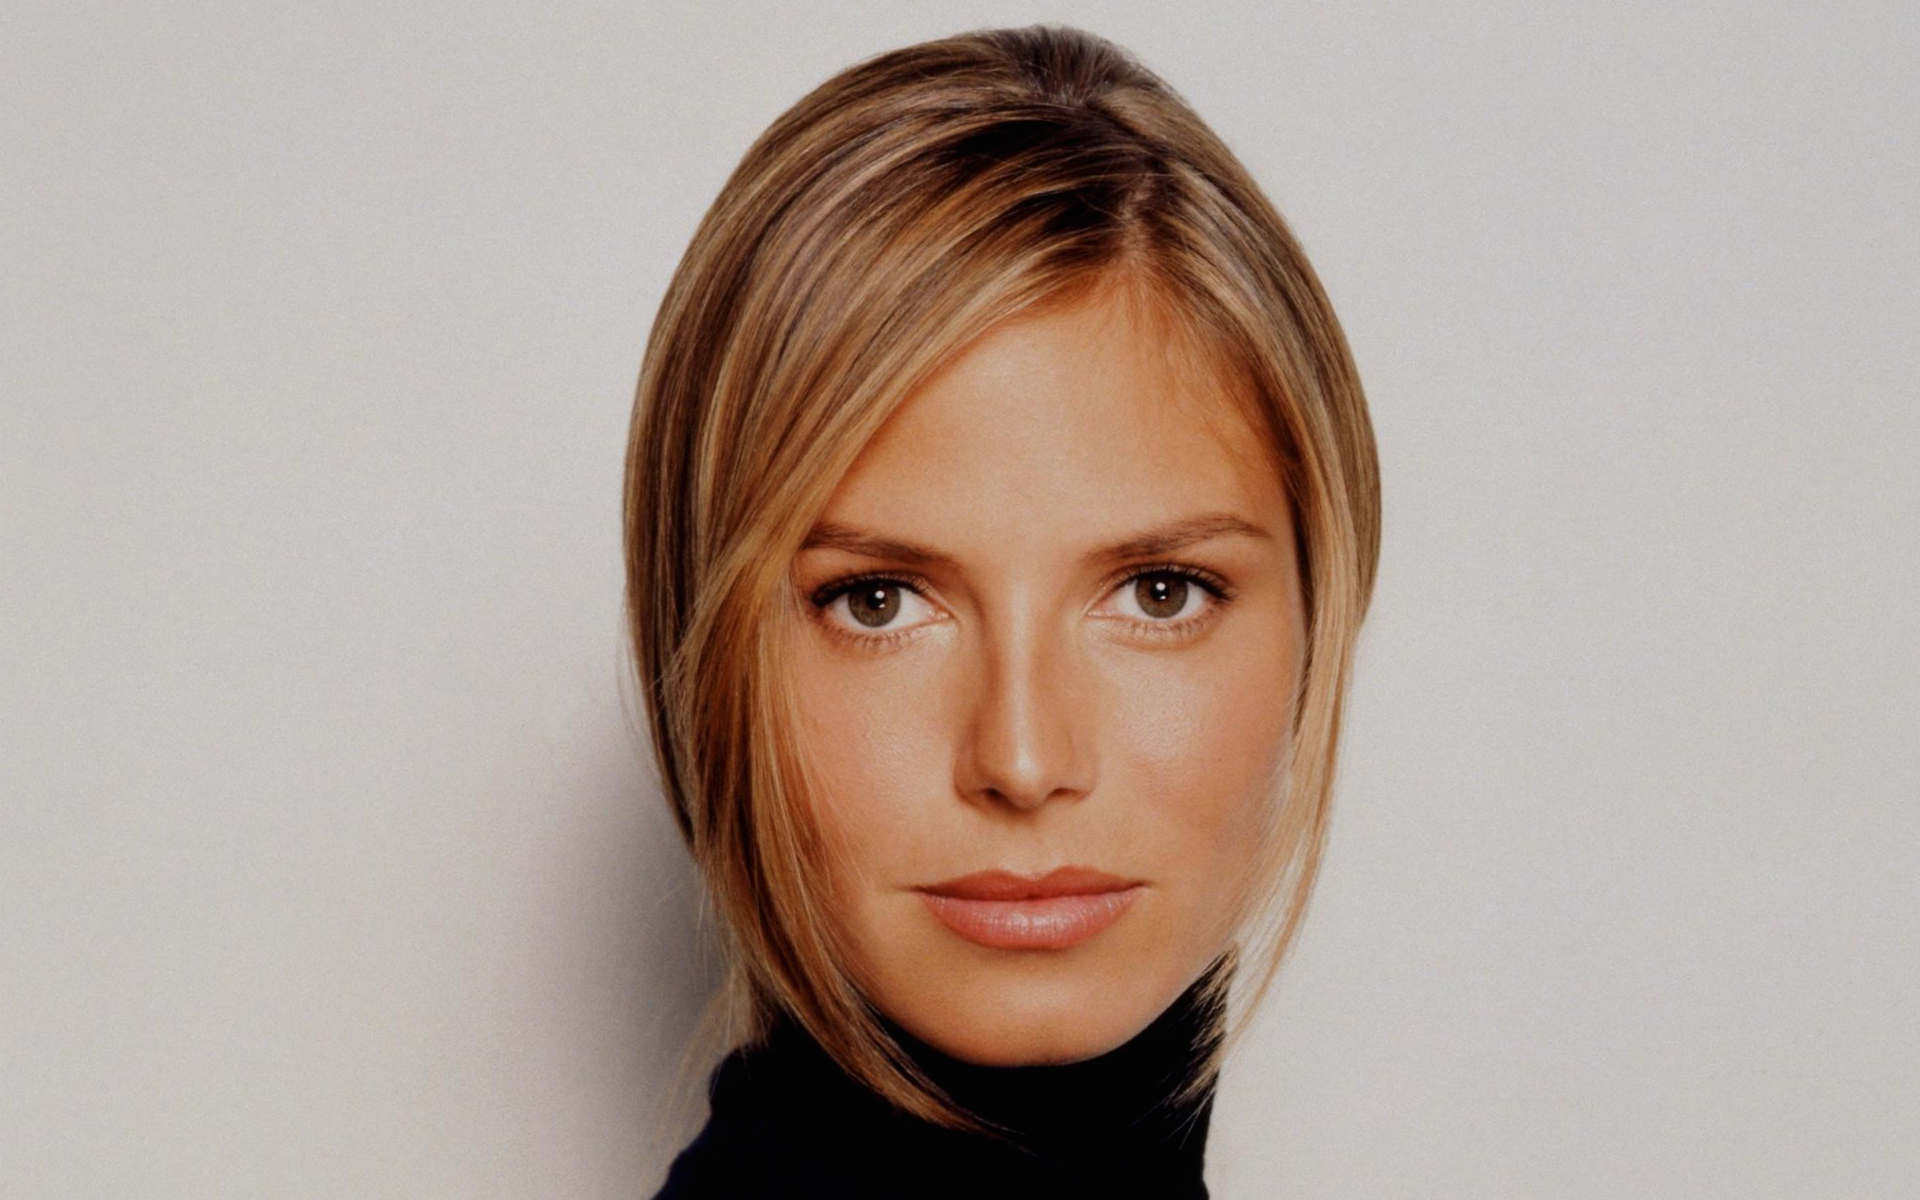 Heidi Klum Celebrity Pictures, Photos and Wallpapers